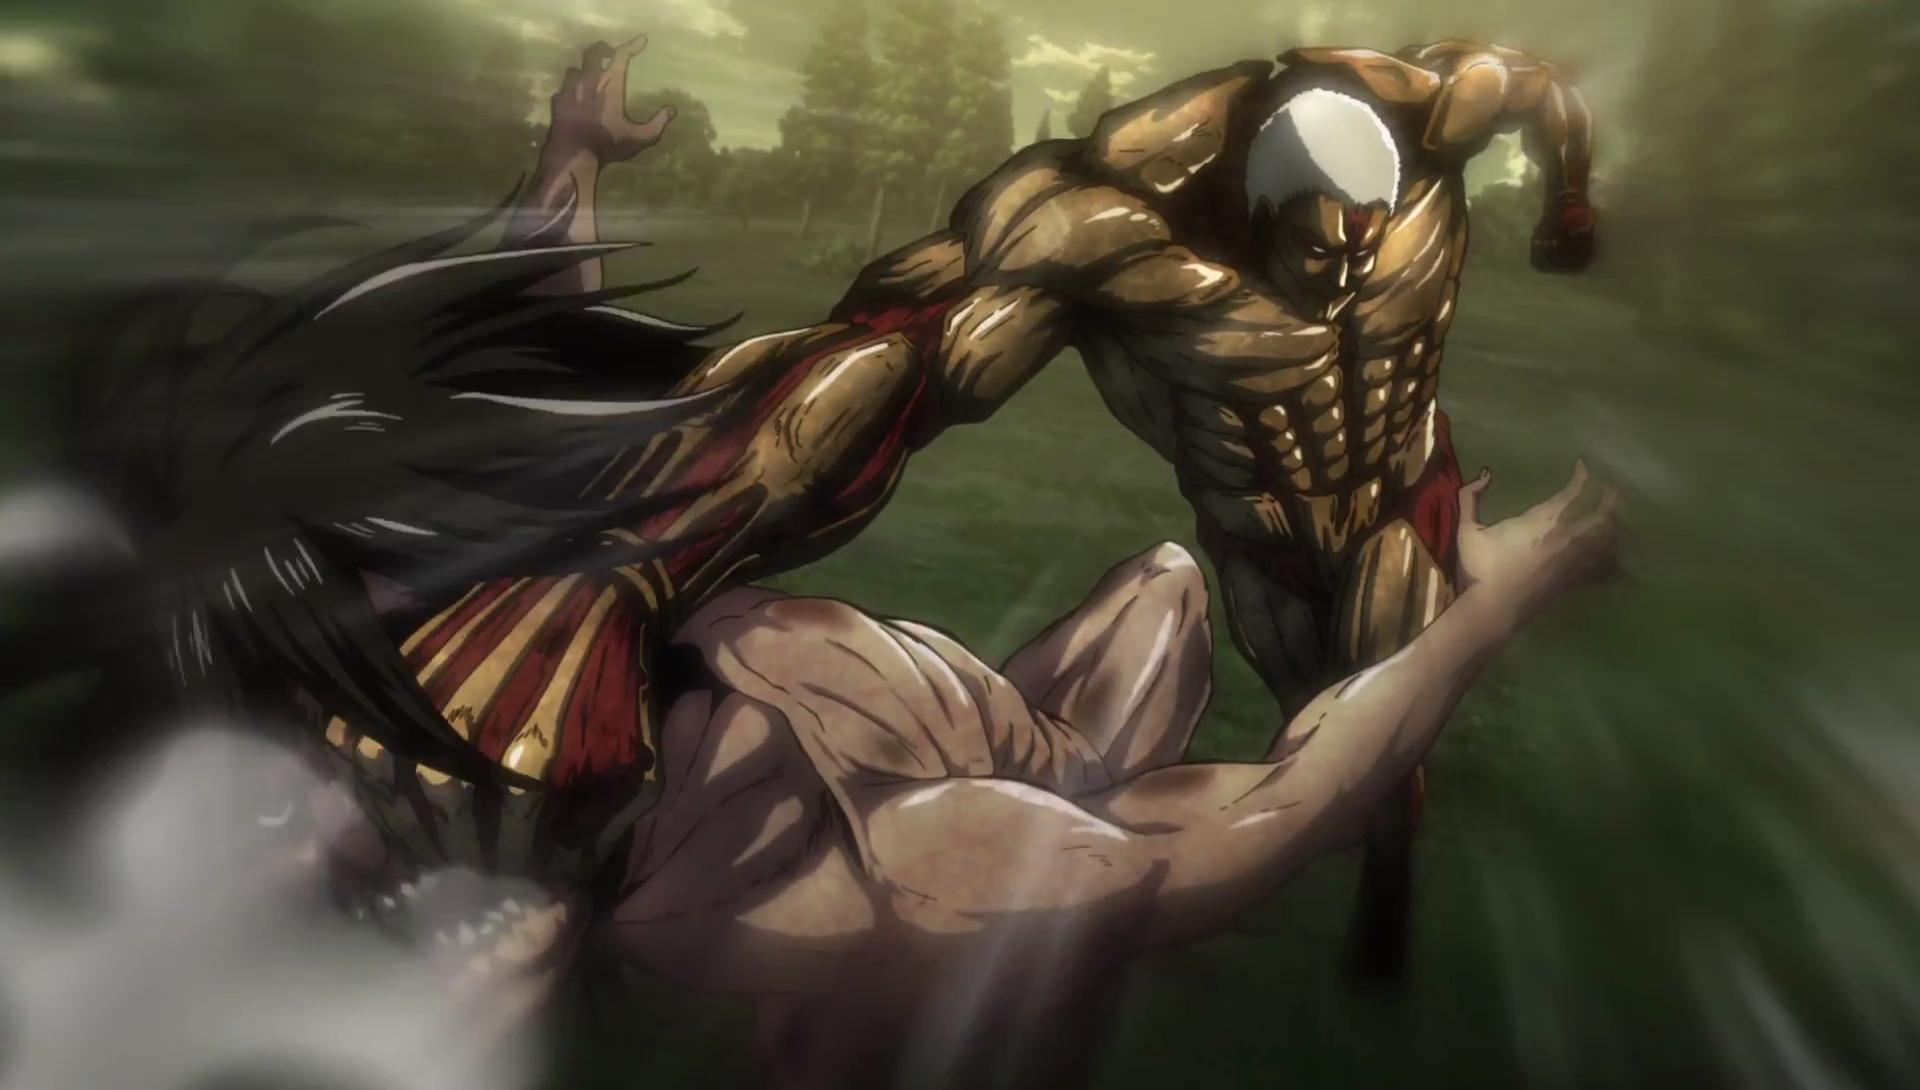 Attack on Titan Chapter 136 Spoilers and Cover Leaks